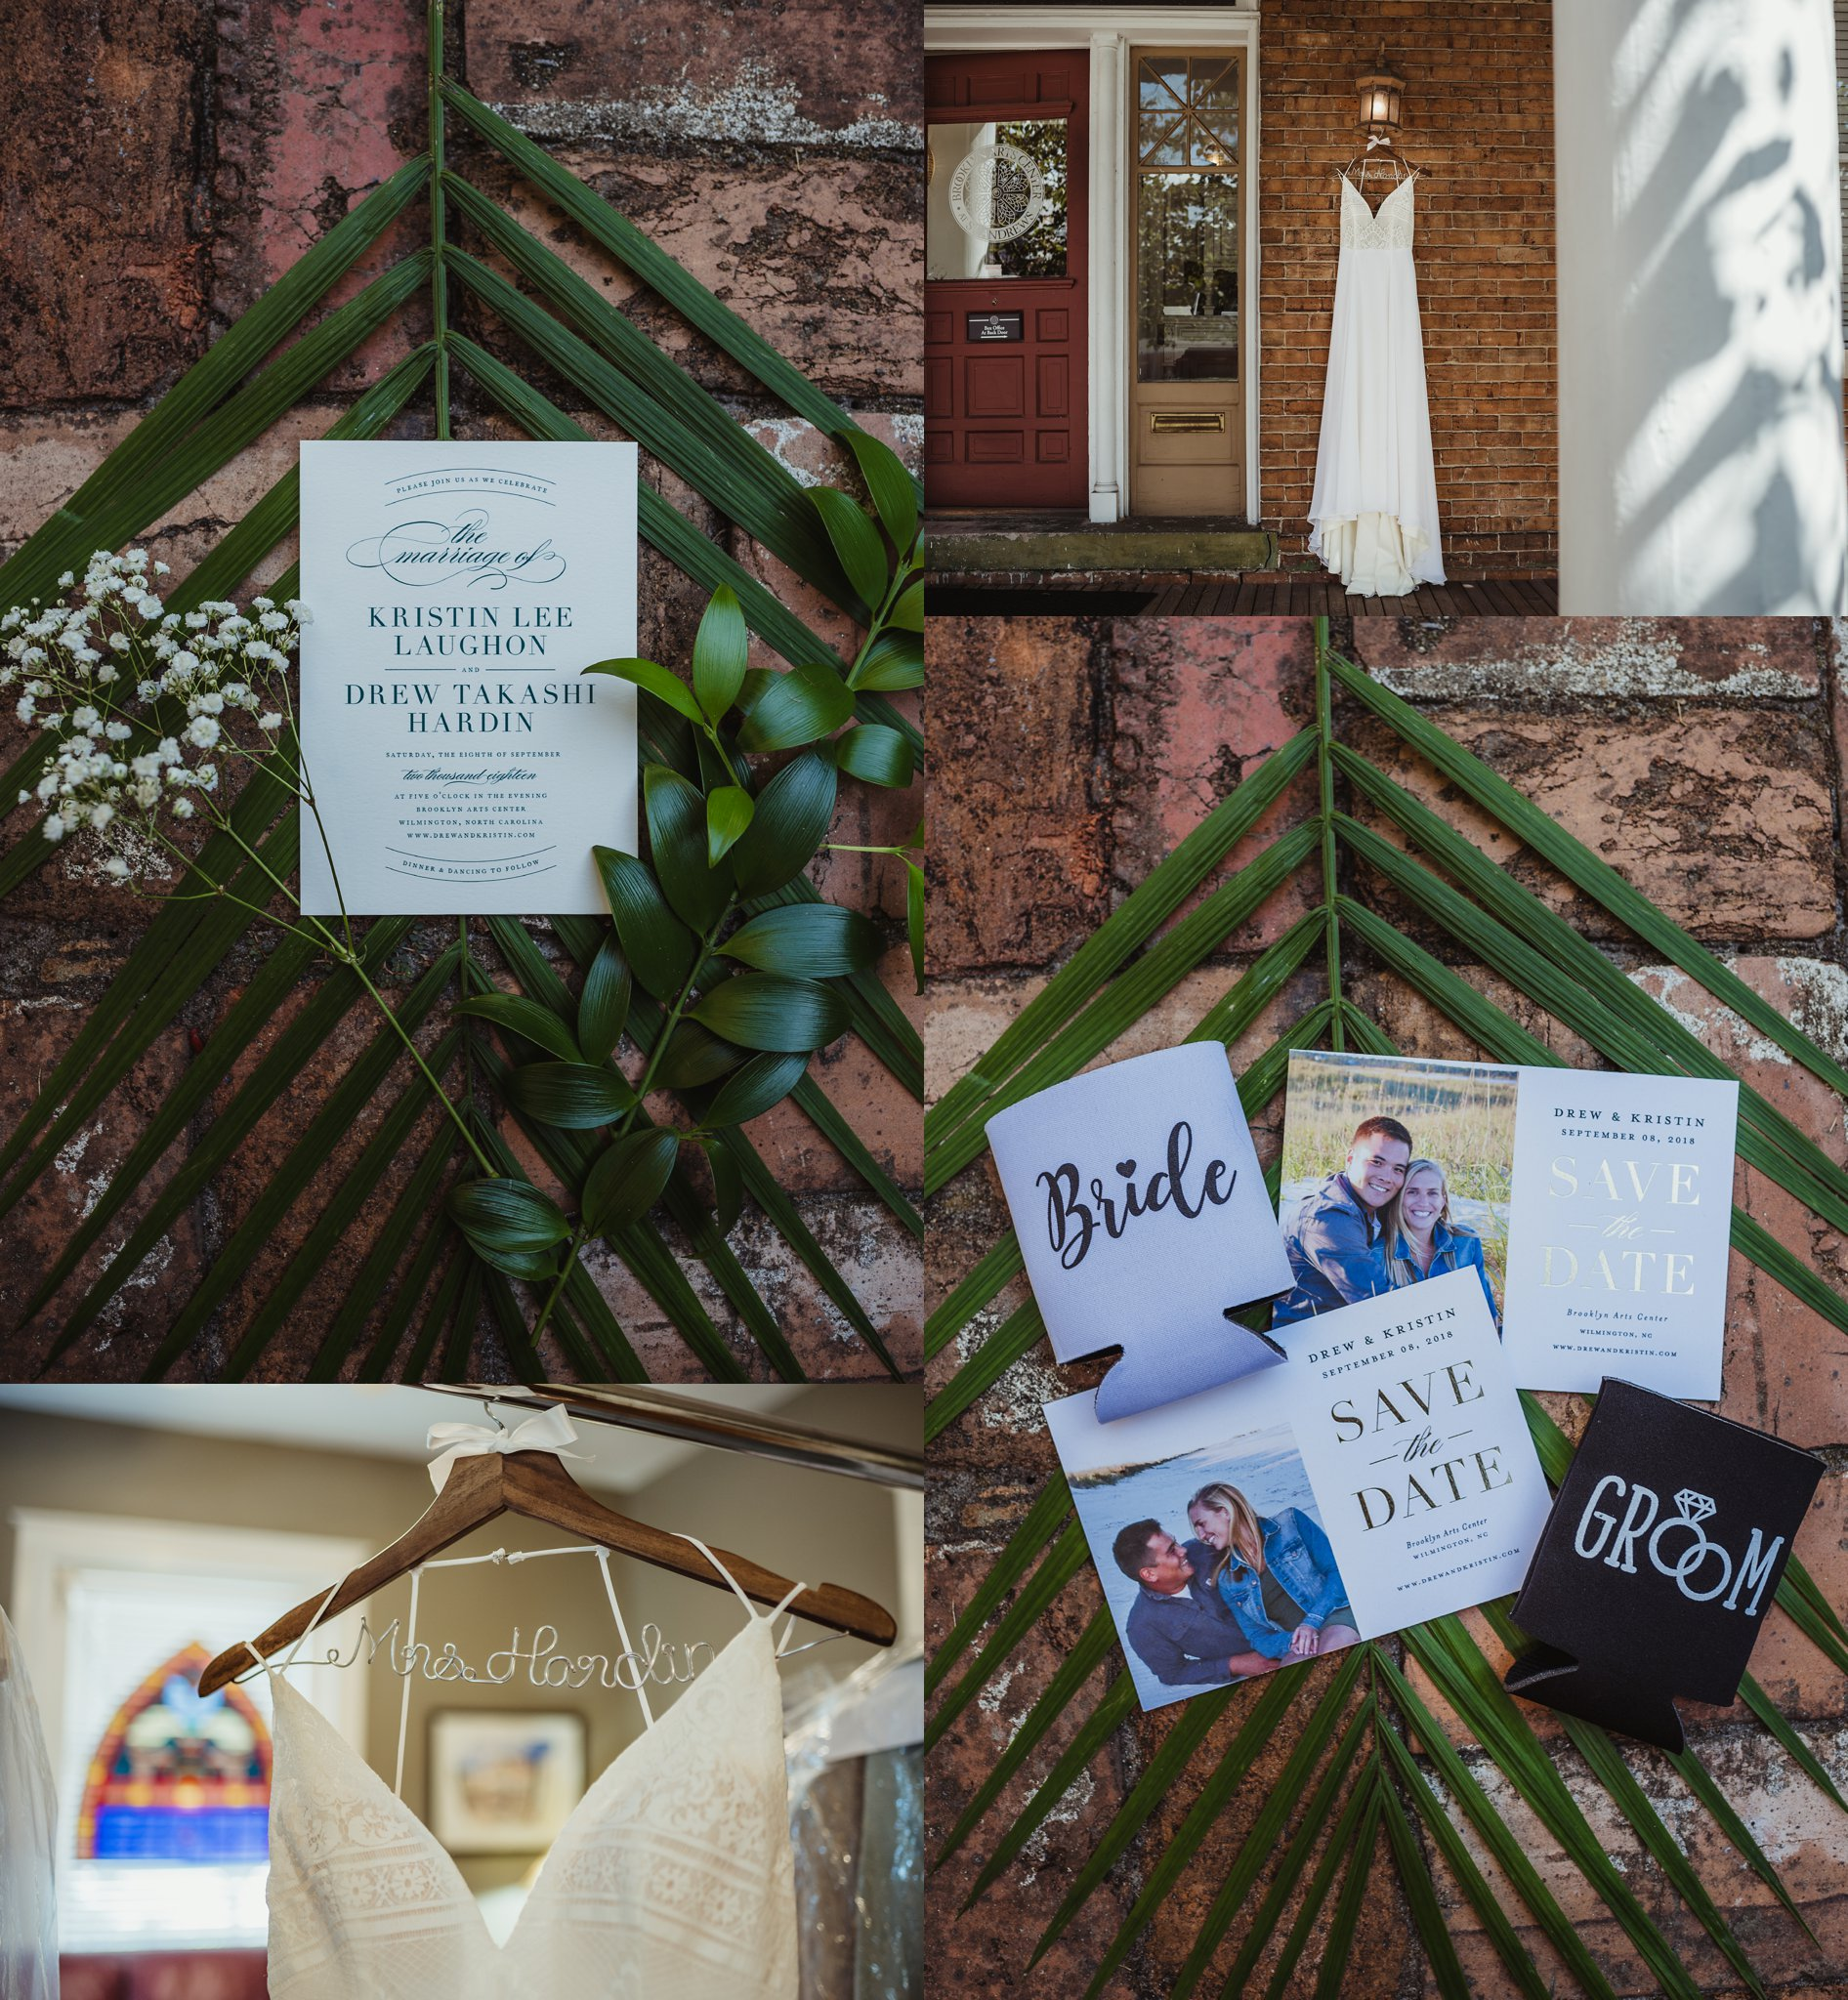 Wedding details contain a dress shot, a personalized hanger, and invitations on a palm frond and brick sidewalk in Wilmington, NC, images by Rose Trail Images.